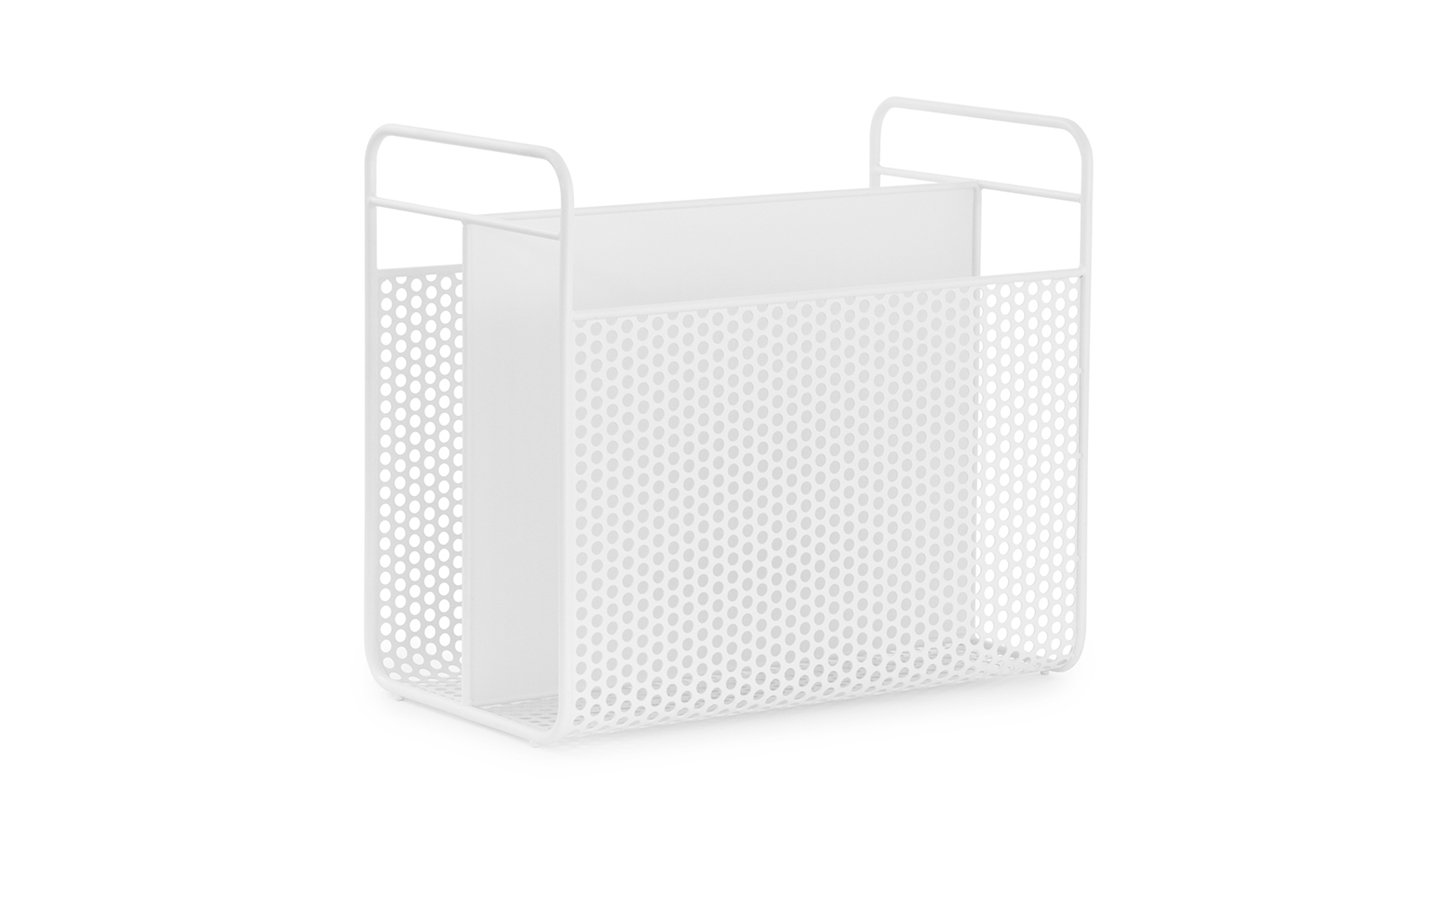 Normann Copenhagen Analog Magazin Rack White Racurs